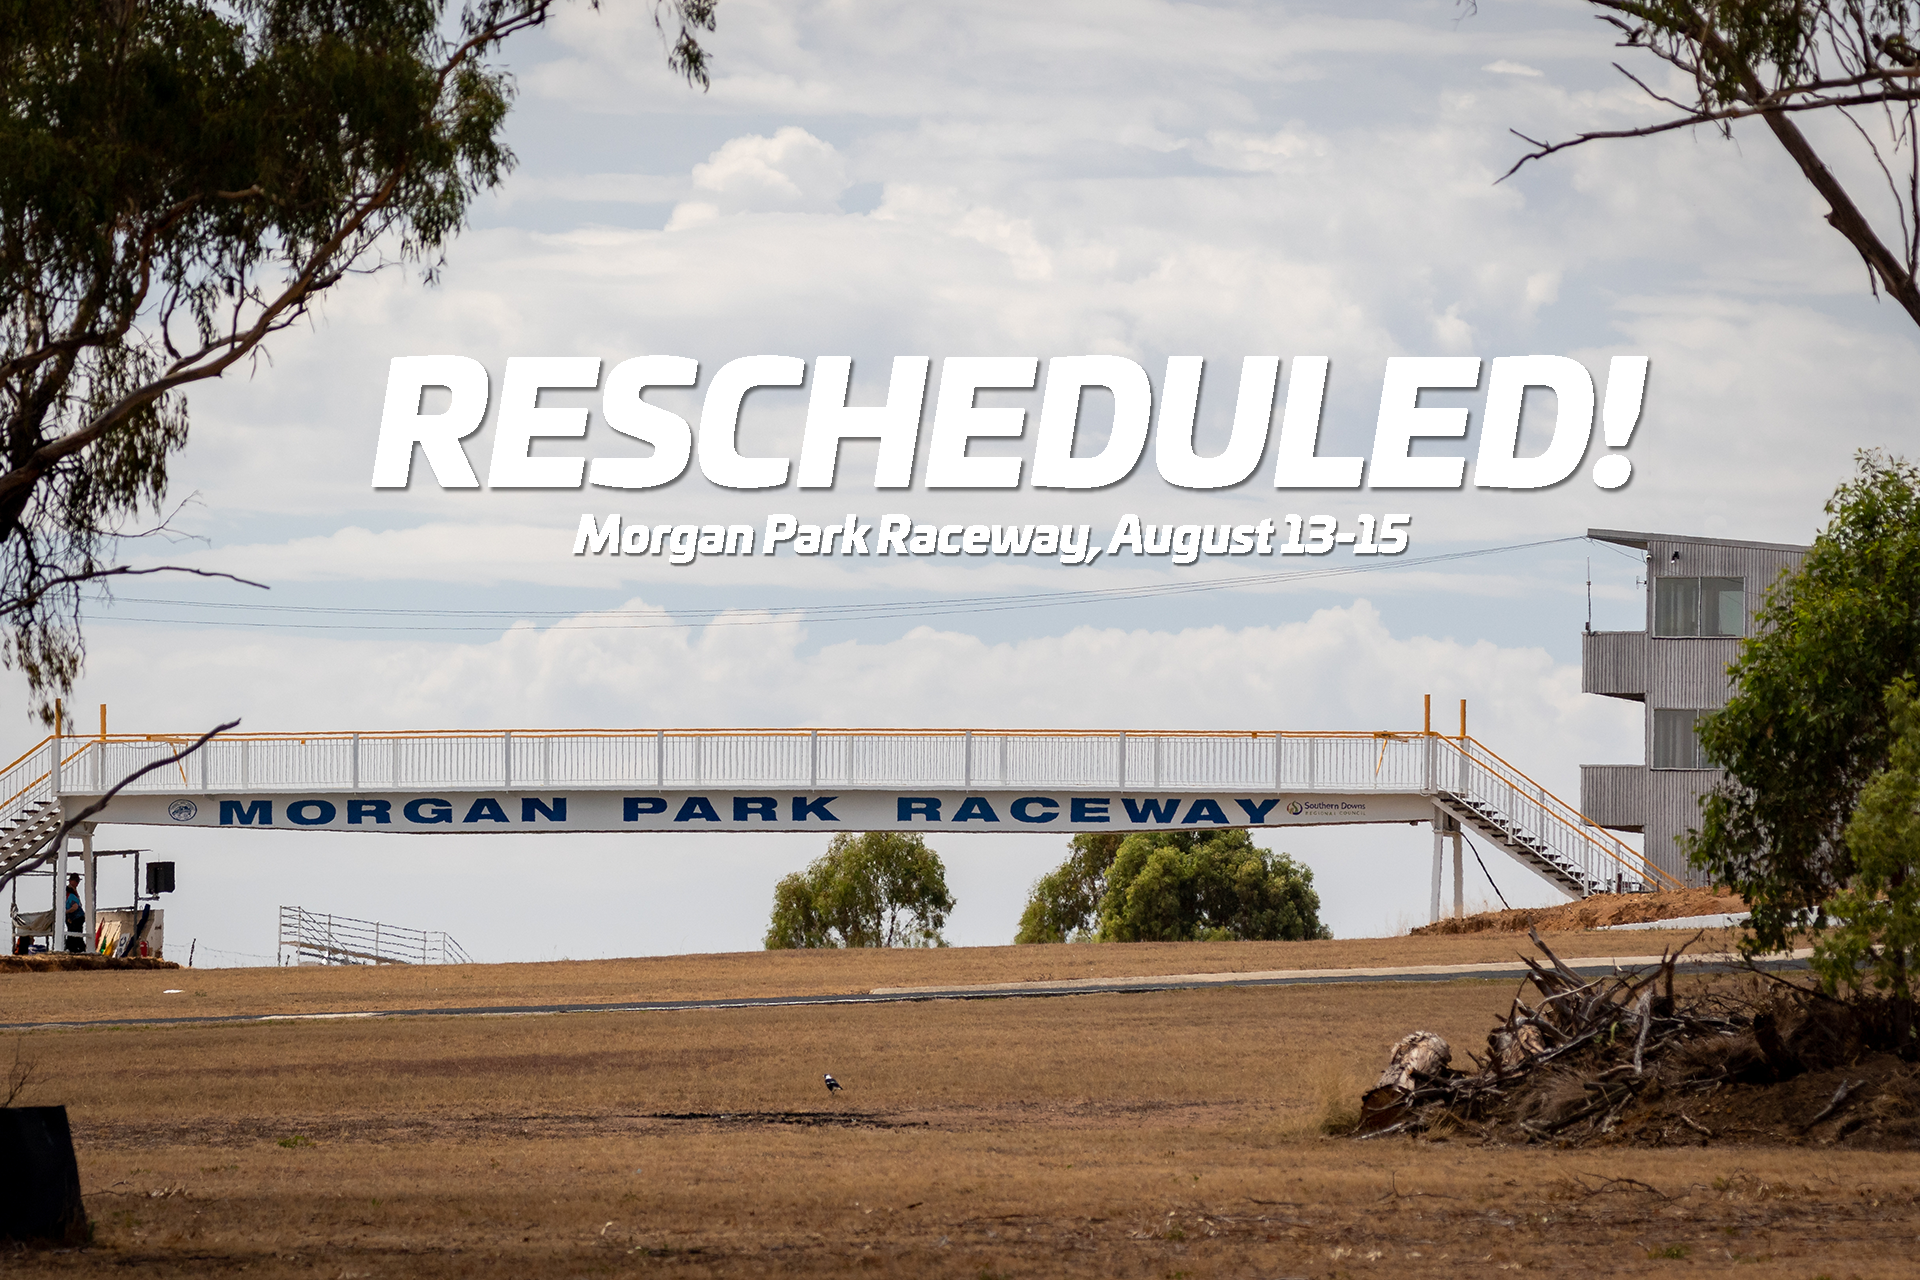 Shannons round at Morgan Park rescheduled to August 13-15